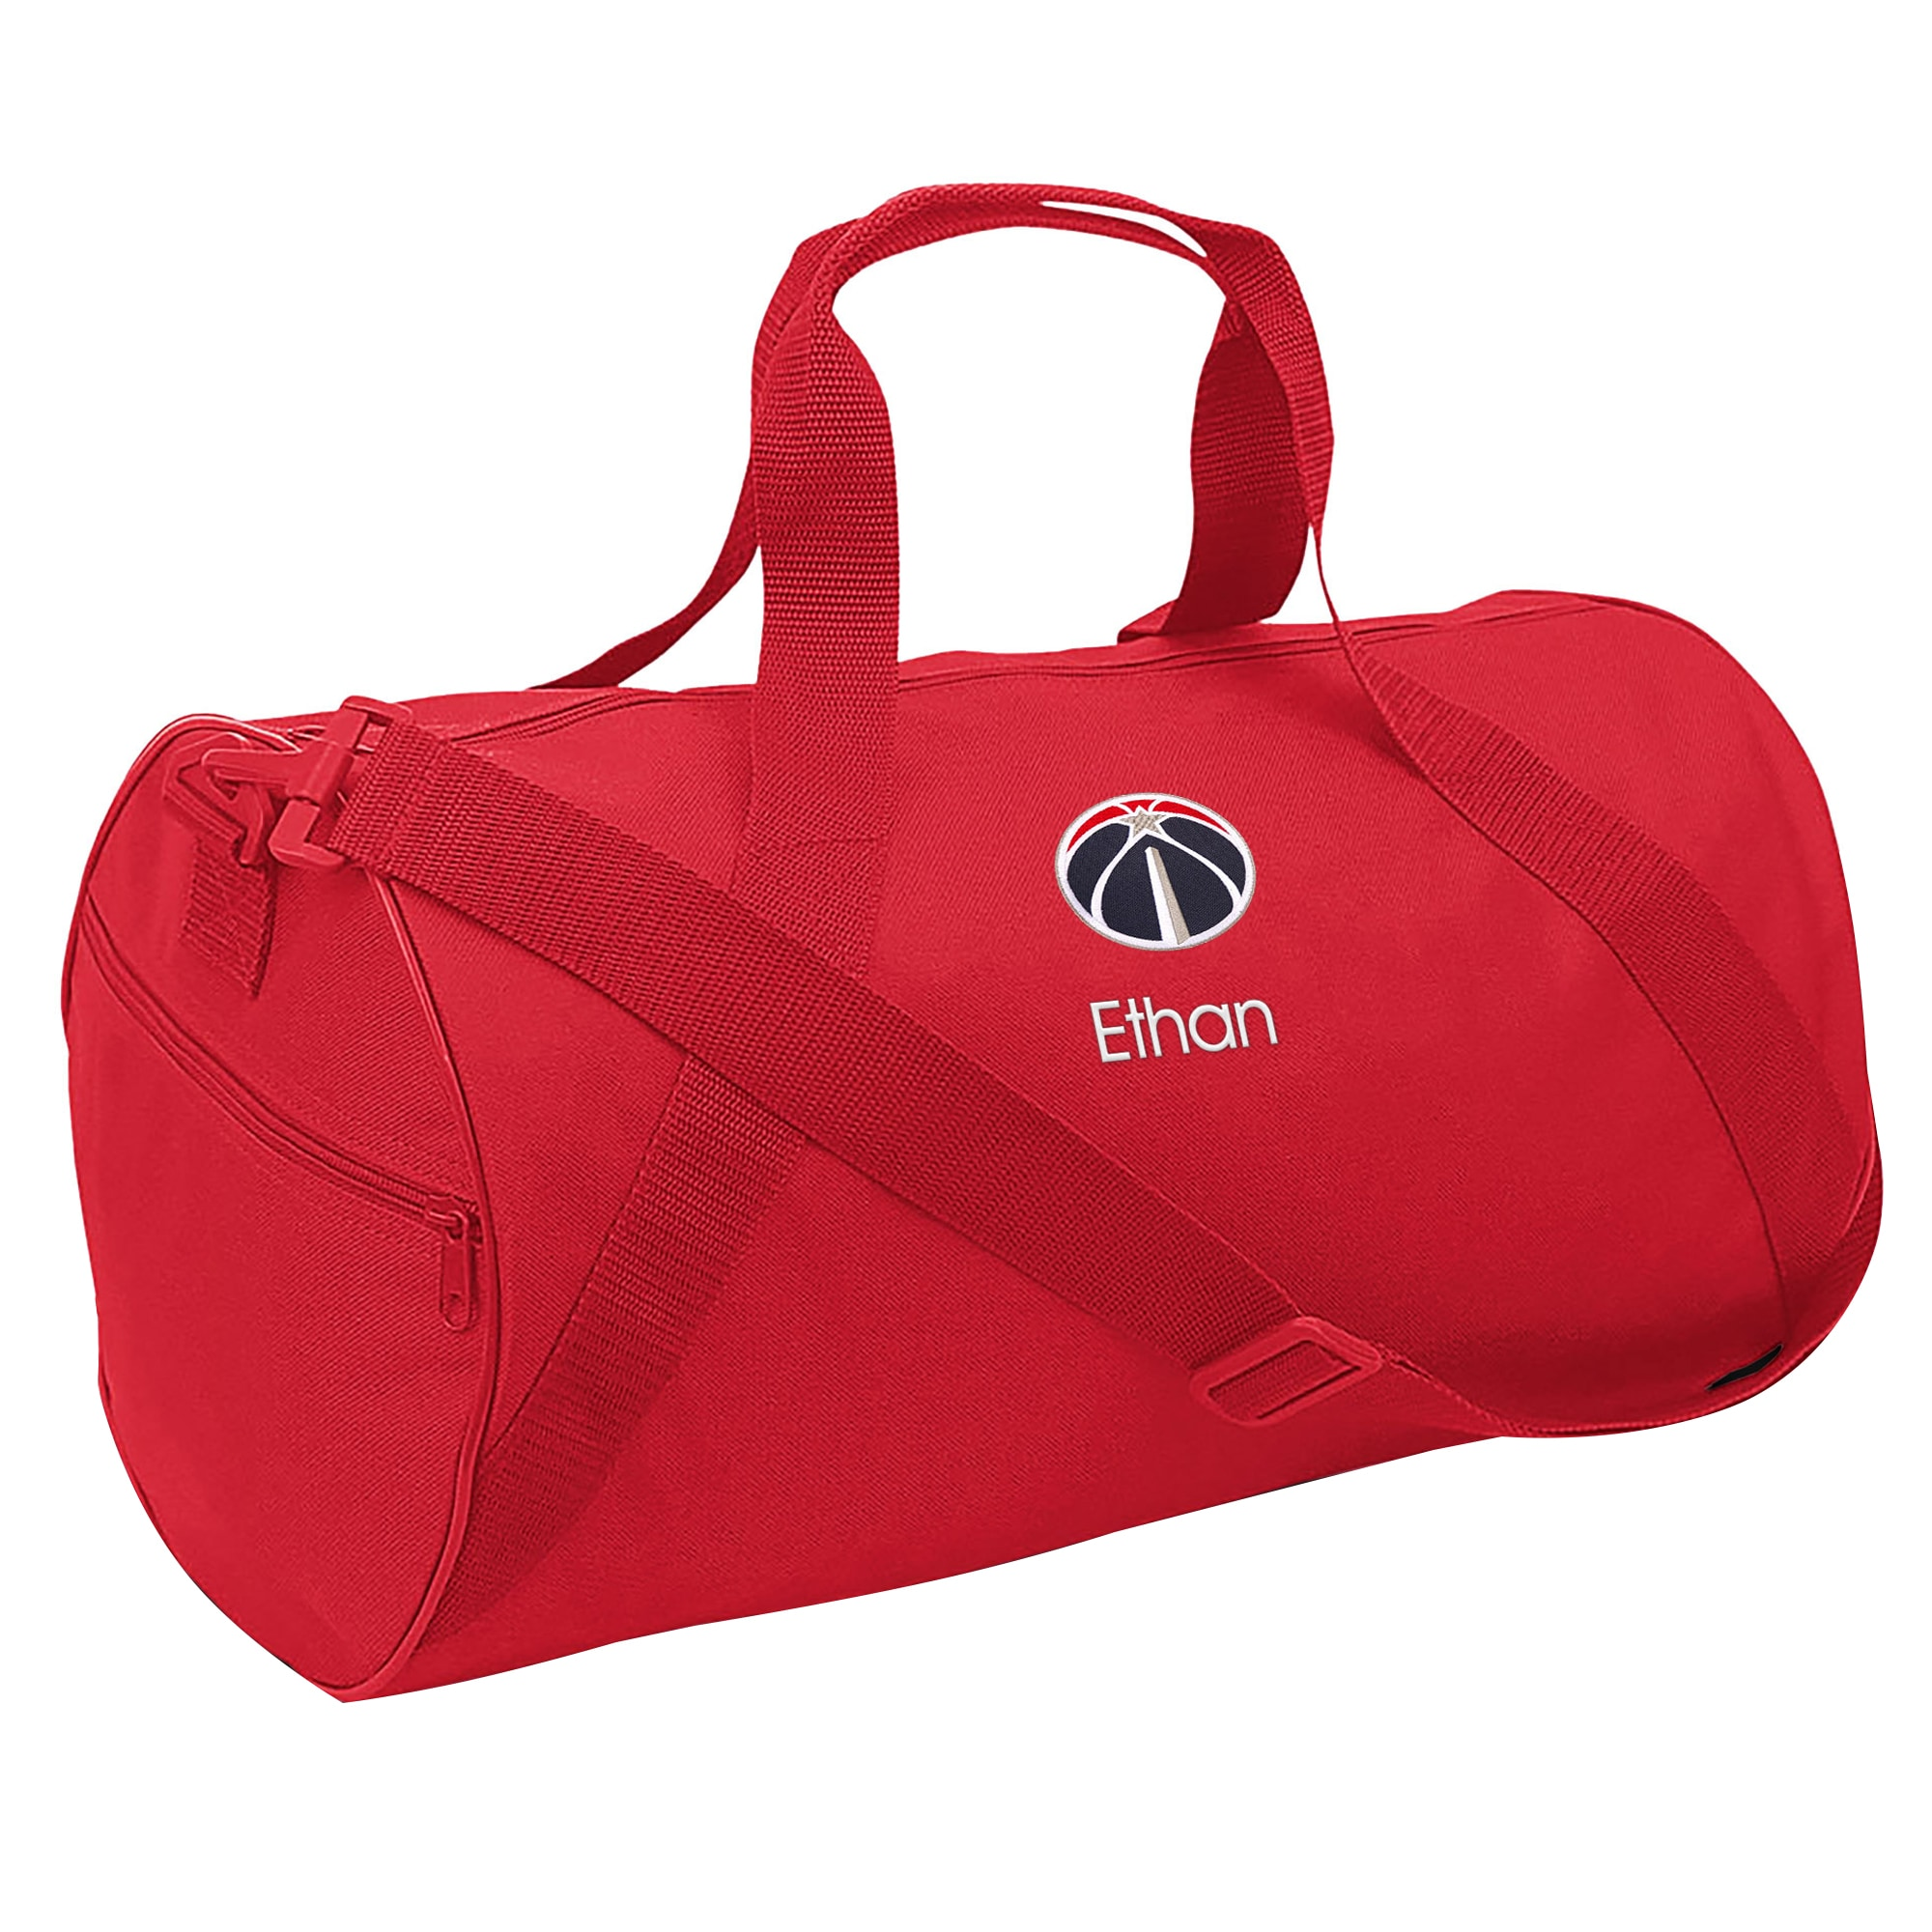 Washington Wizards Youth Personalized Duffle Bag - Red